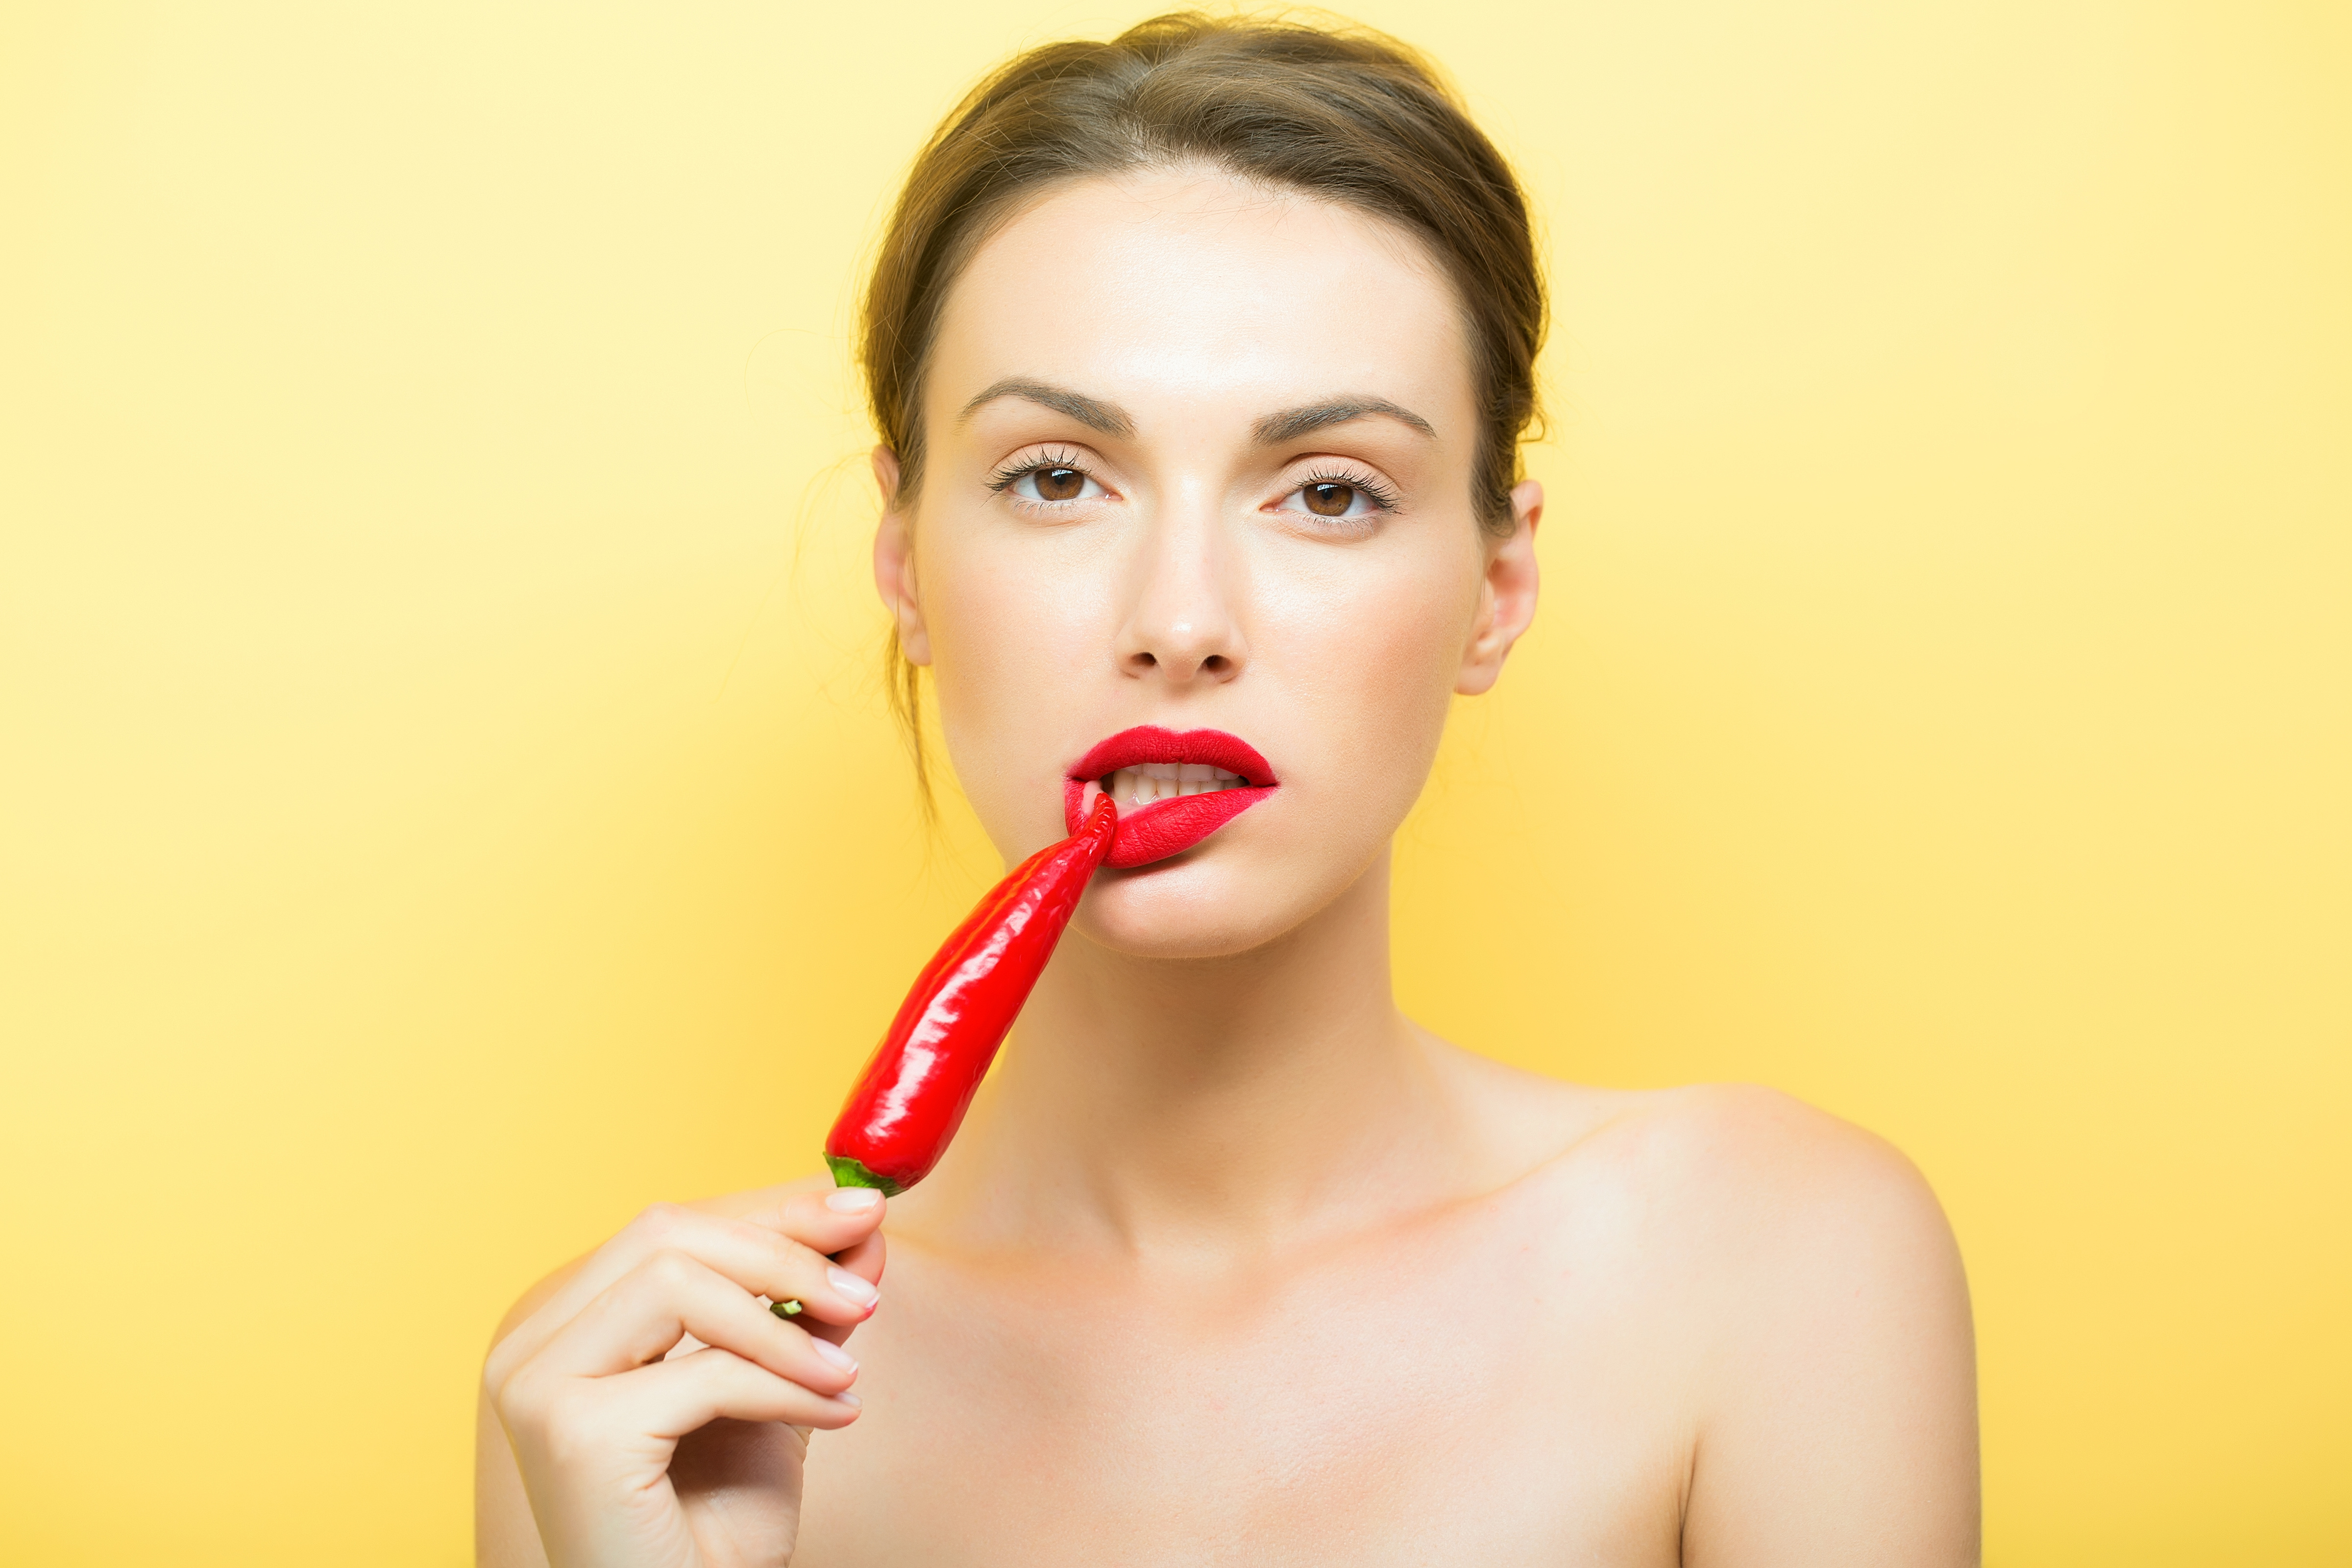 10 Foods to Boost Libido